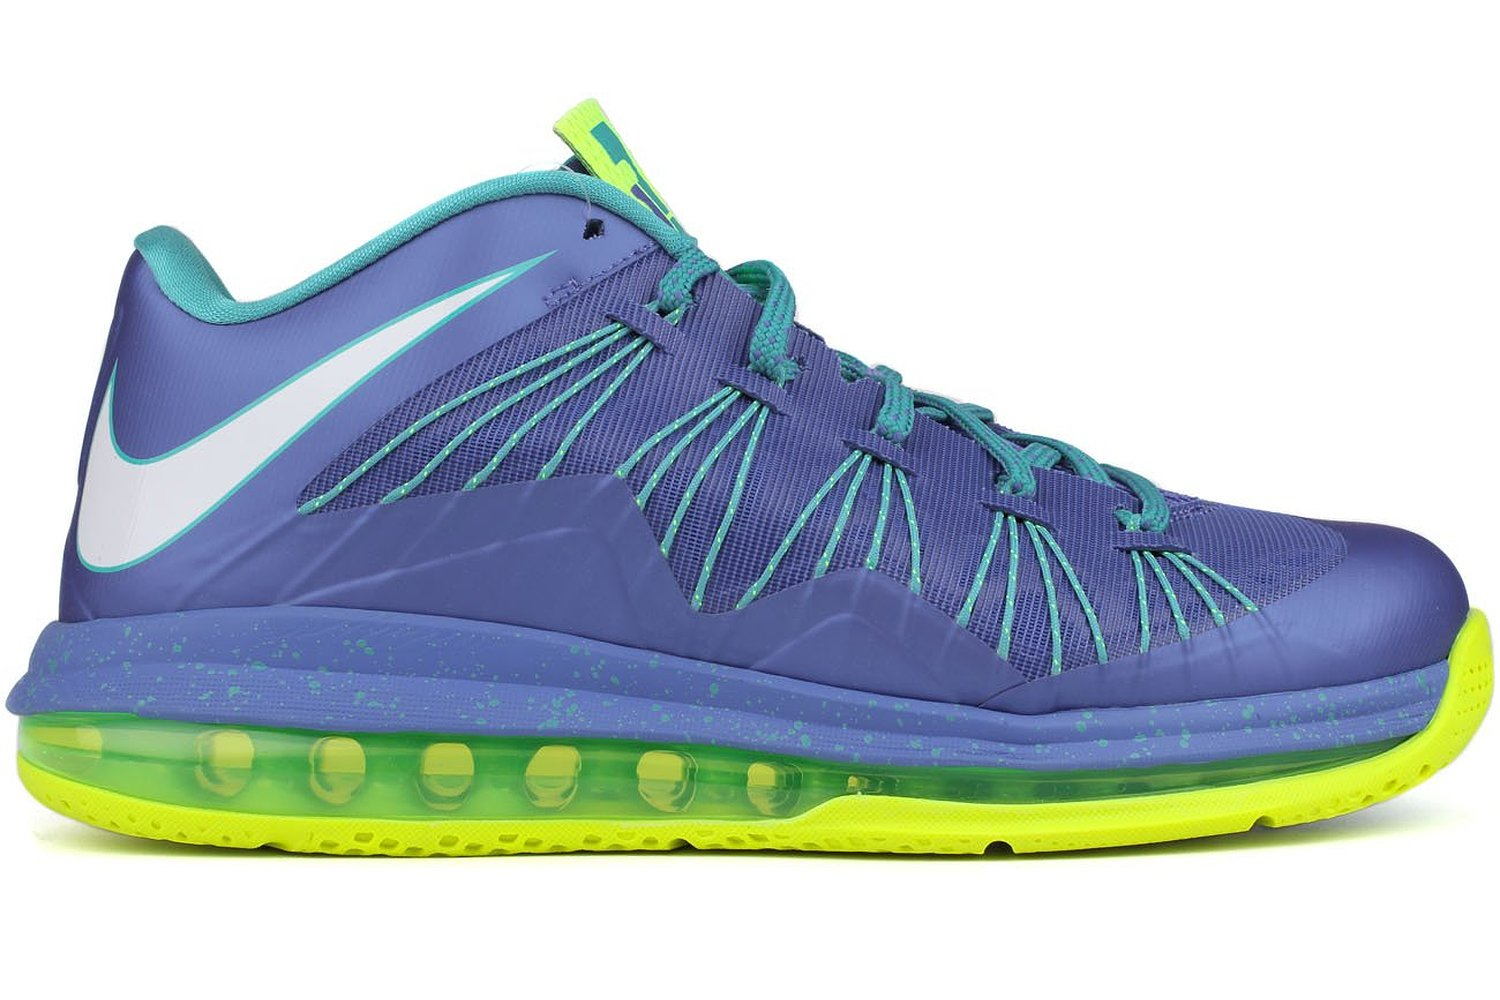 f731884ad09c Get Quotations · Nike Air Max Lebron X Low